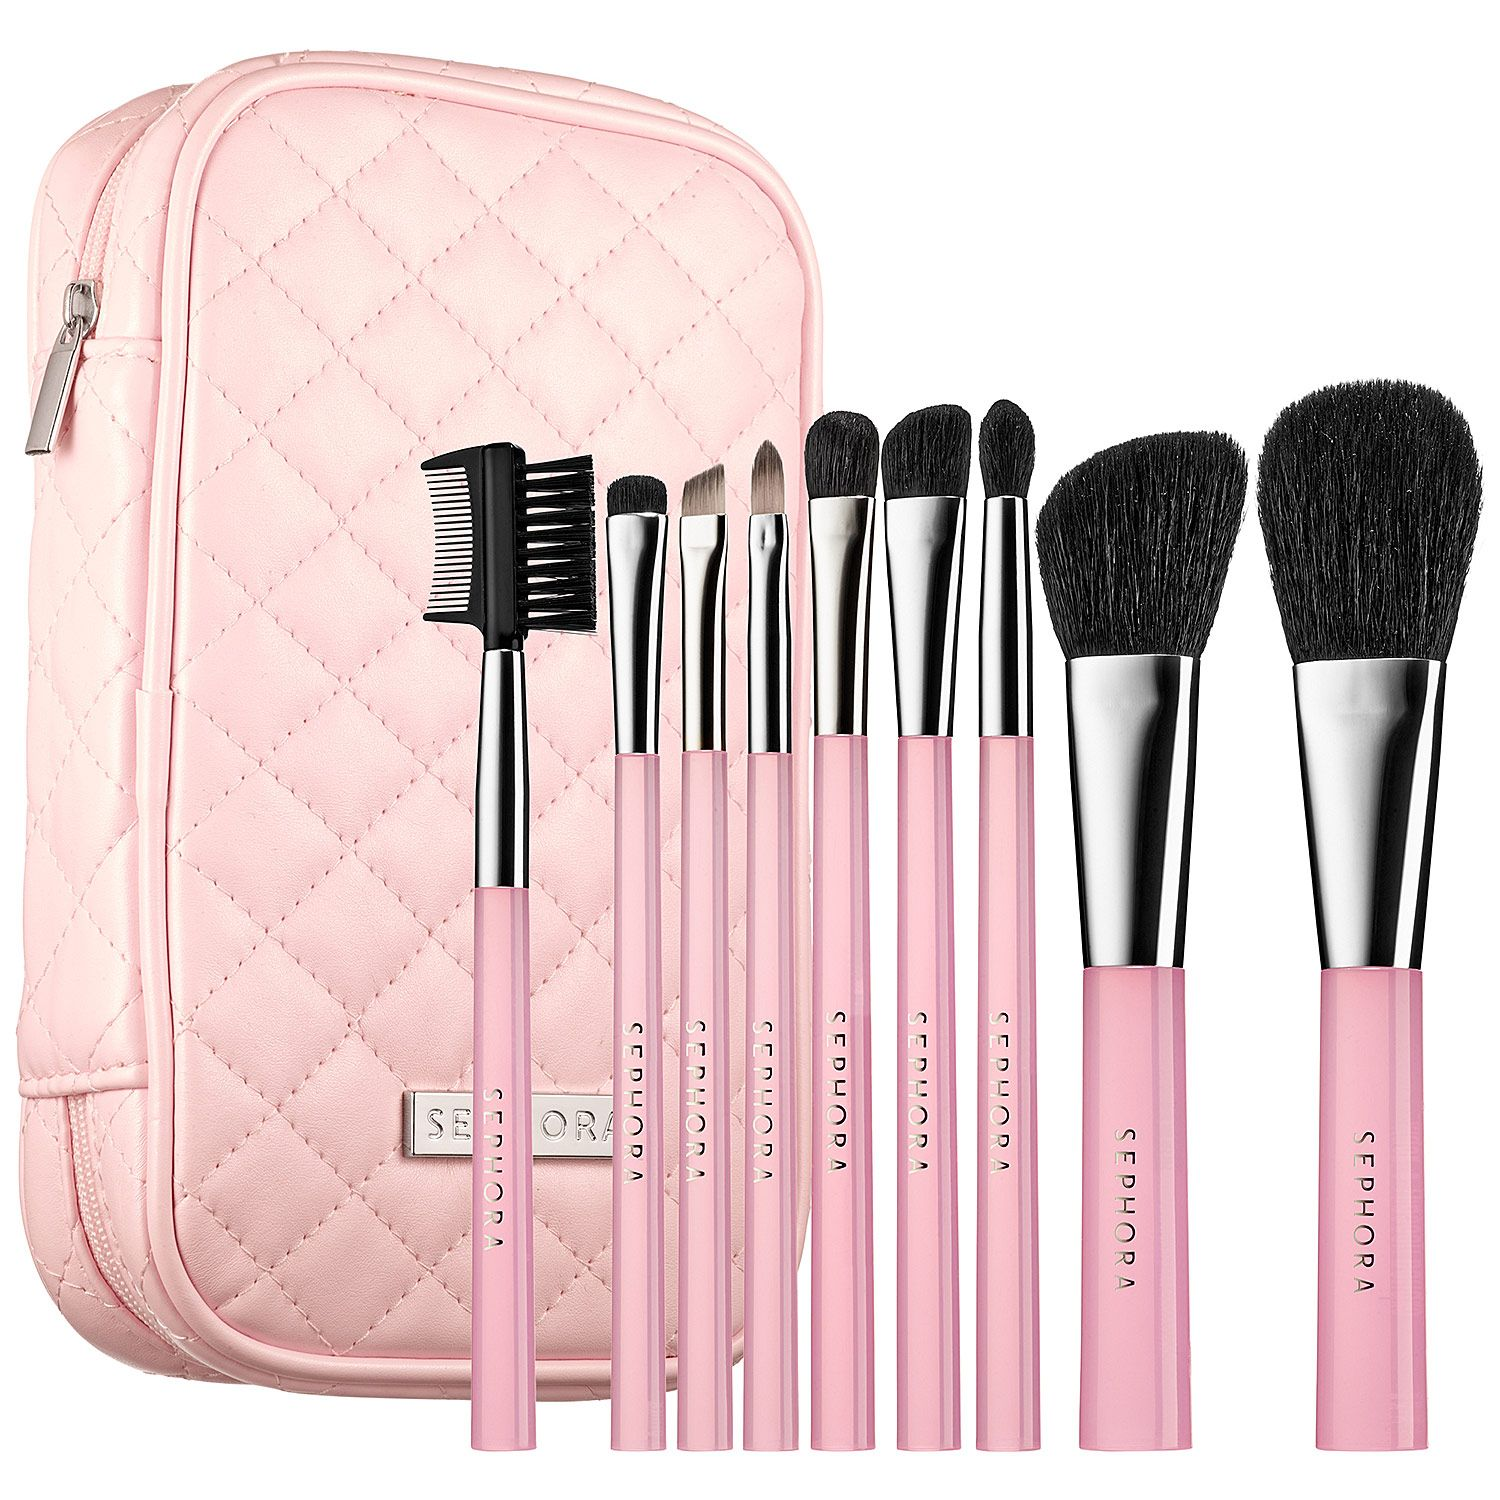 ASIMOON Makeup Brushes Premium Synthetic Dreamy Cosmetics